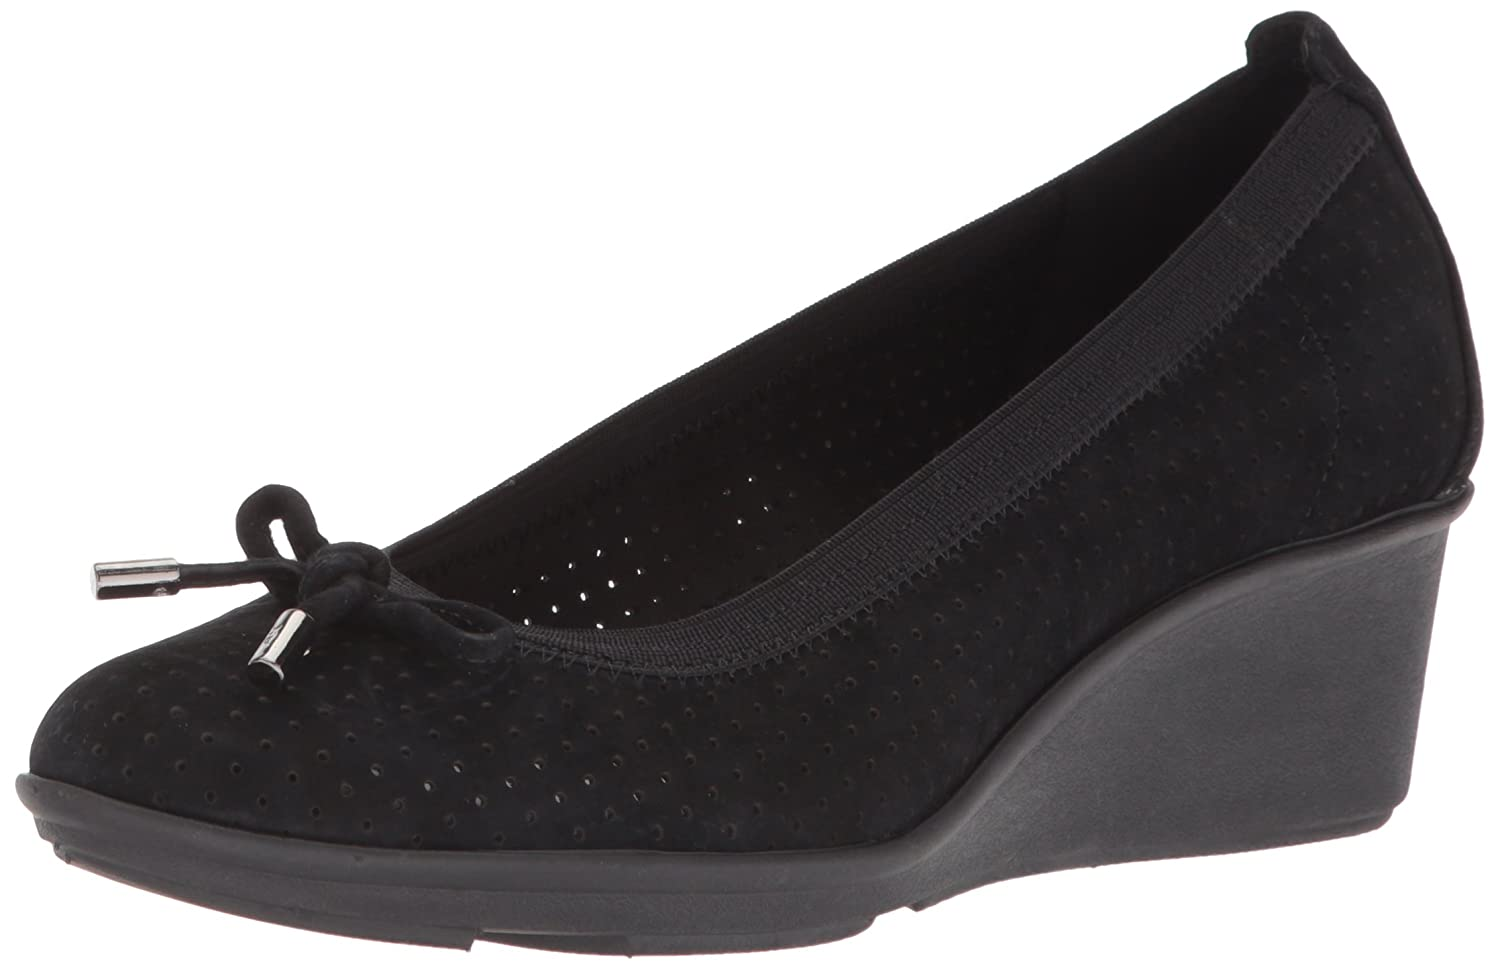 Anne Klein Women's Carissa Perforated Sport Wedge Pump B077Y6XQHD 5 B(M) US|Black Nubuck